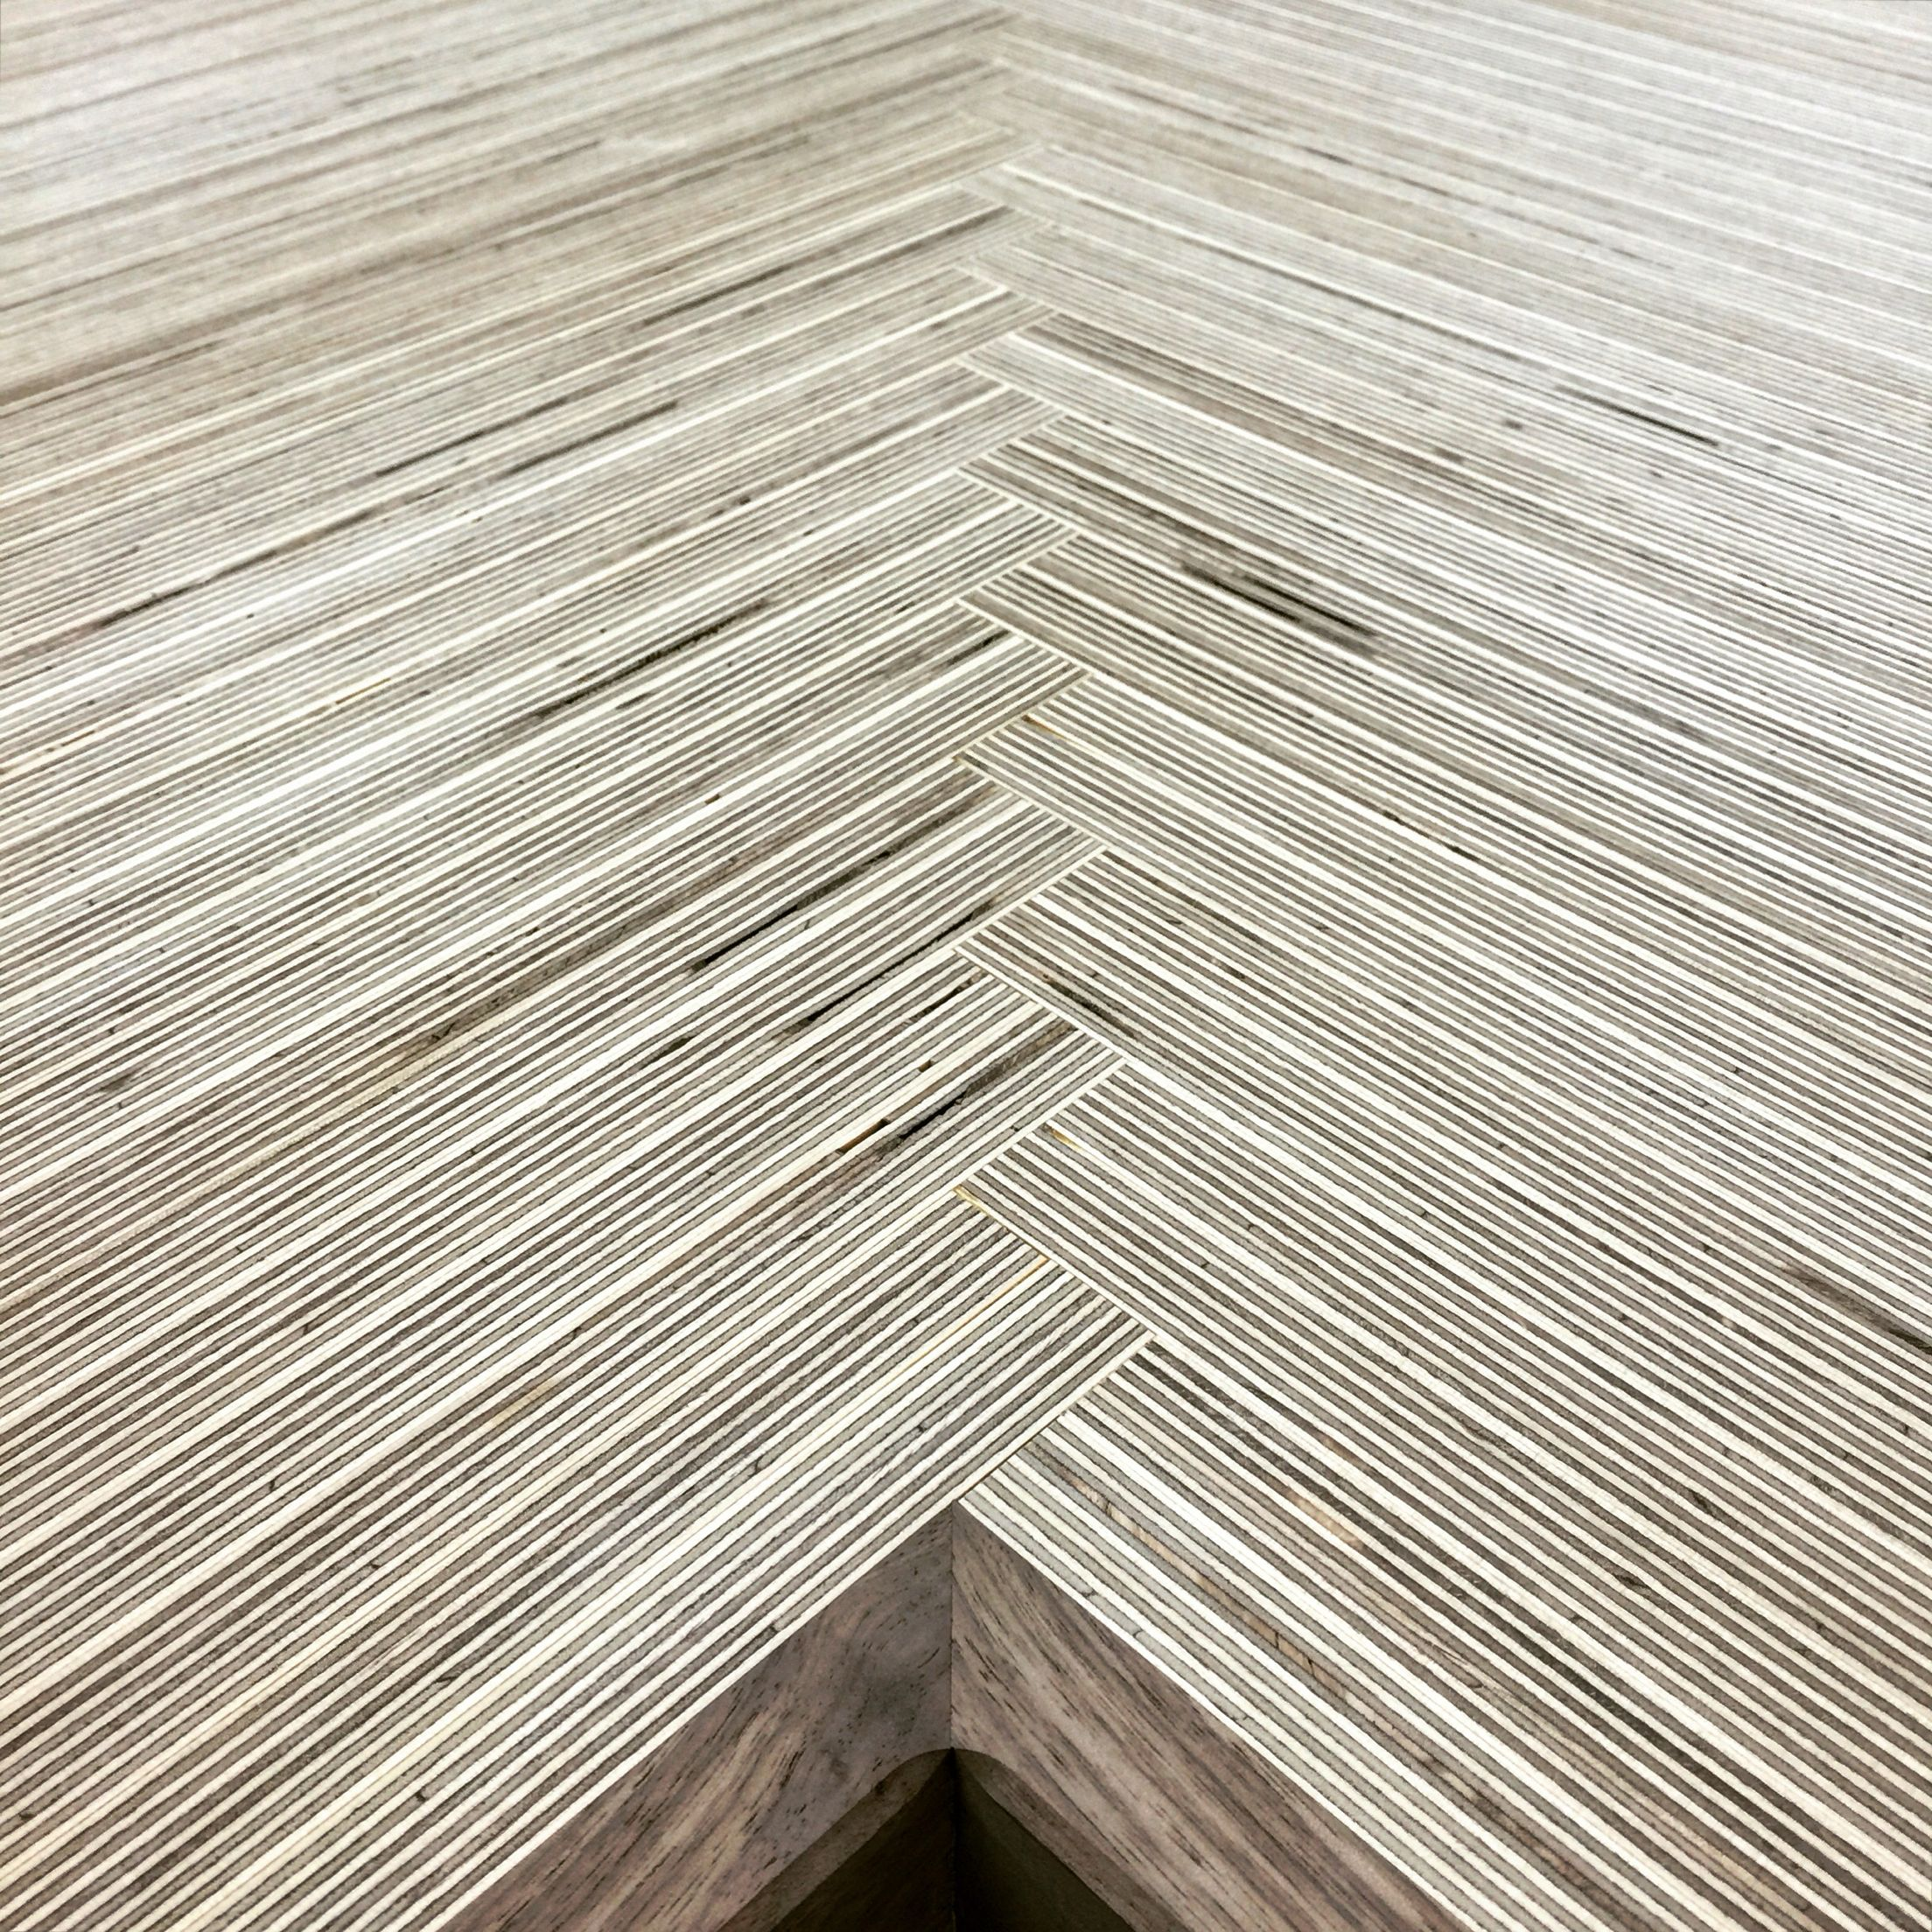 Baltic Birch Plywood Design For A Kitchen Counter Top Herringbone At The Crease With Walnut Trim